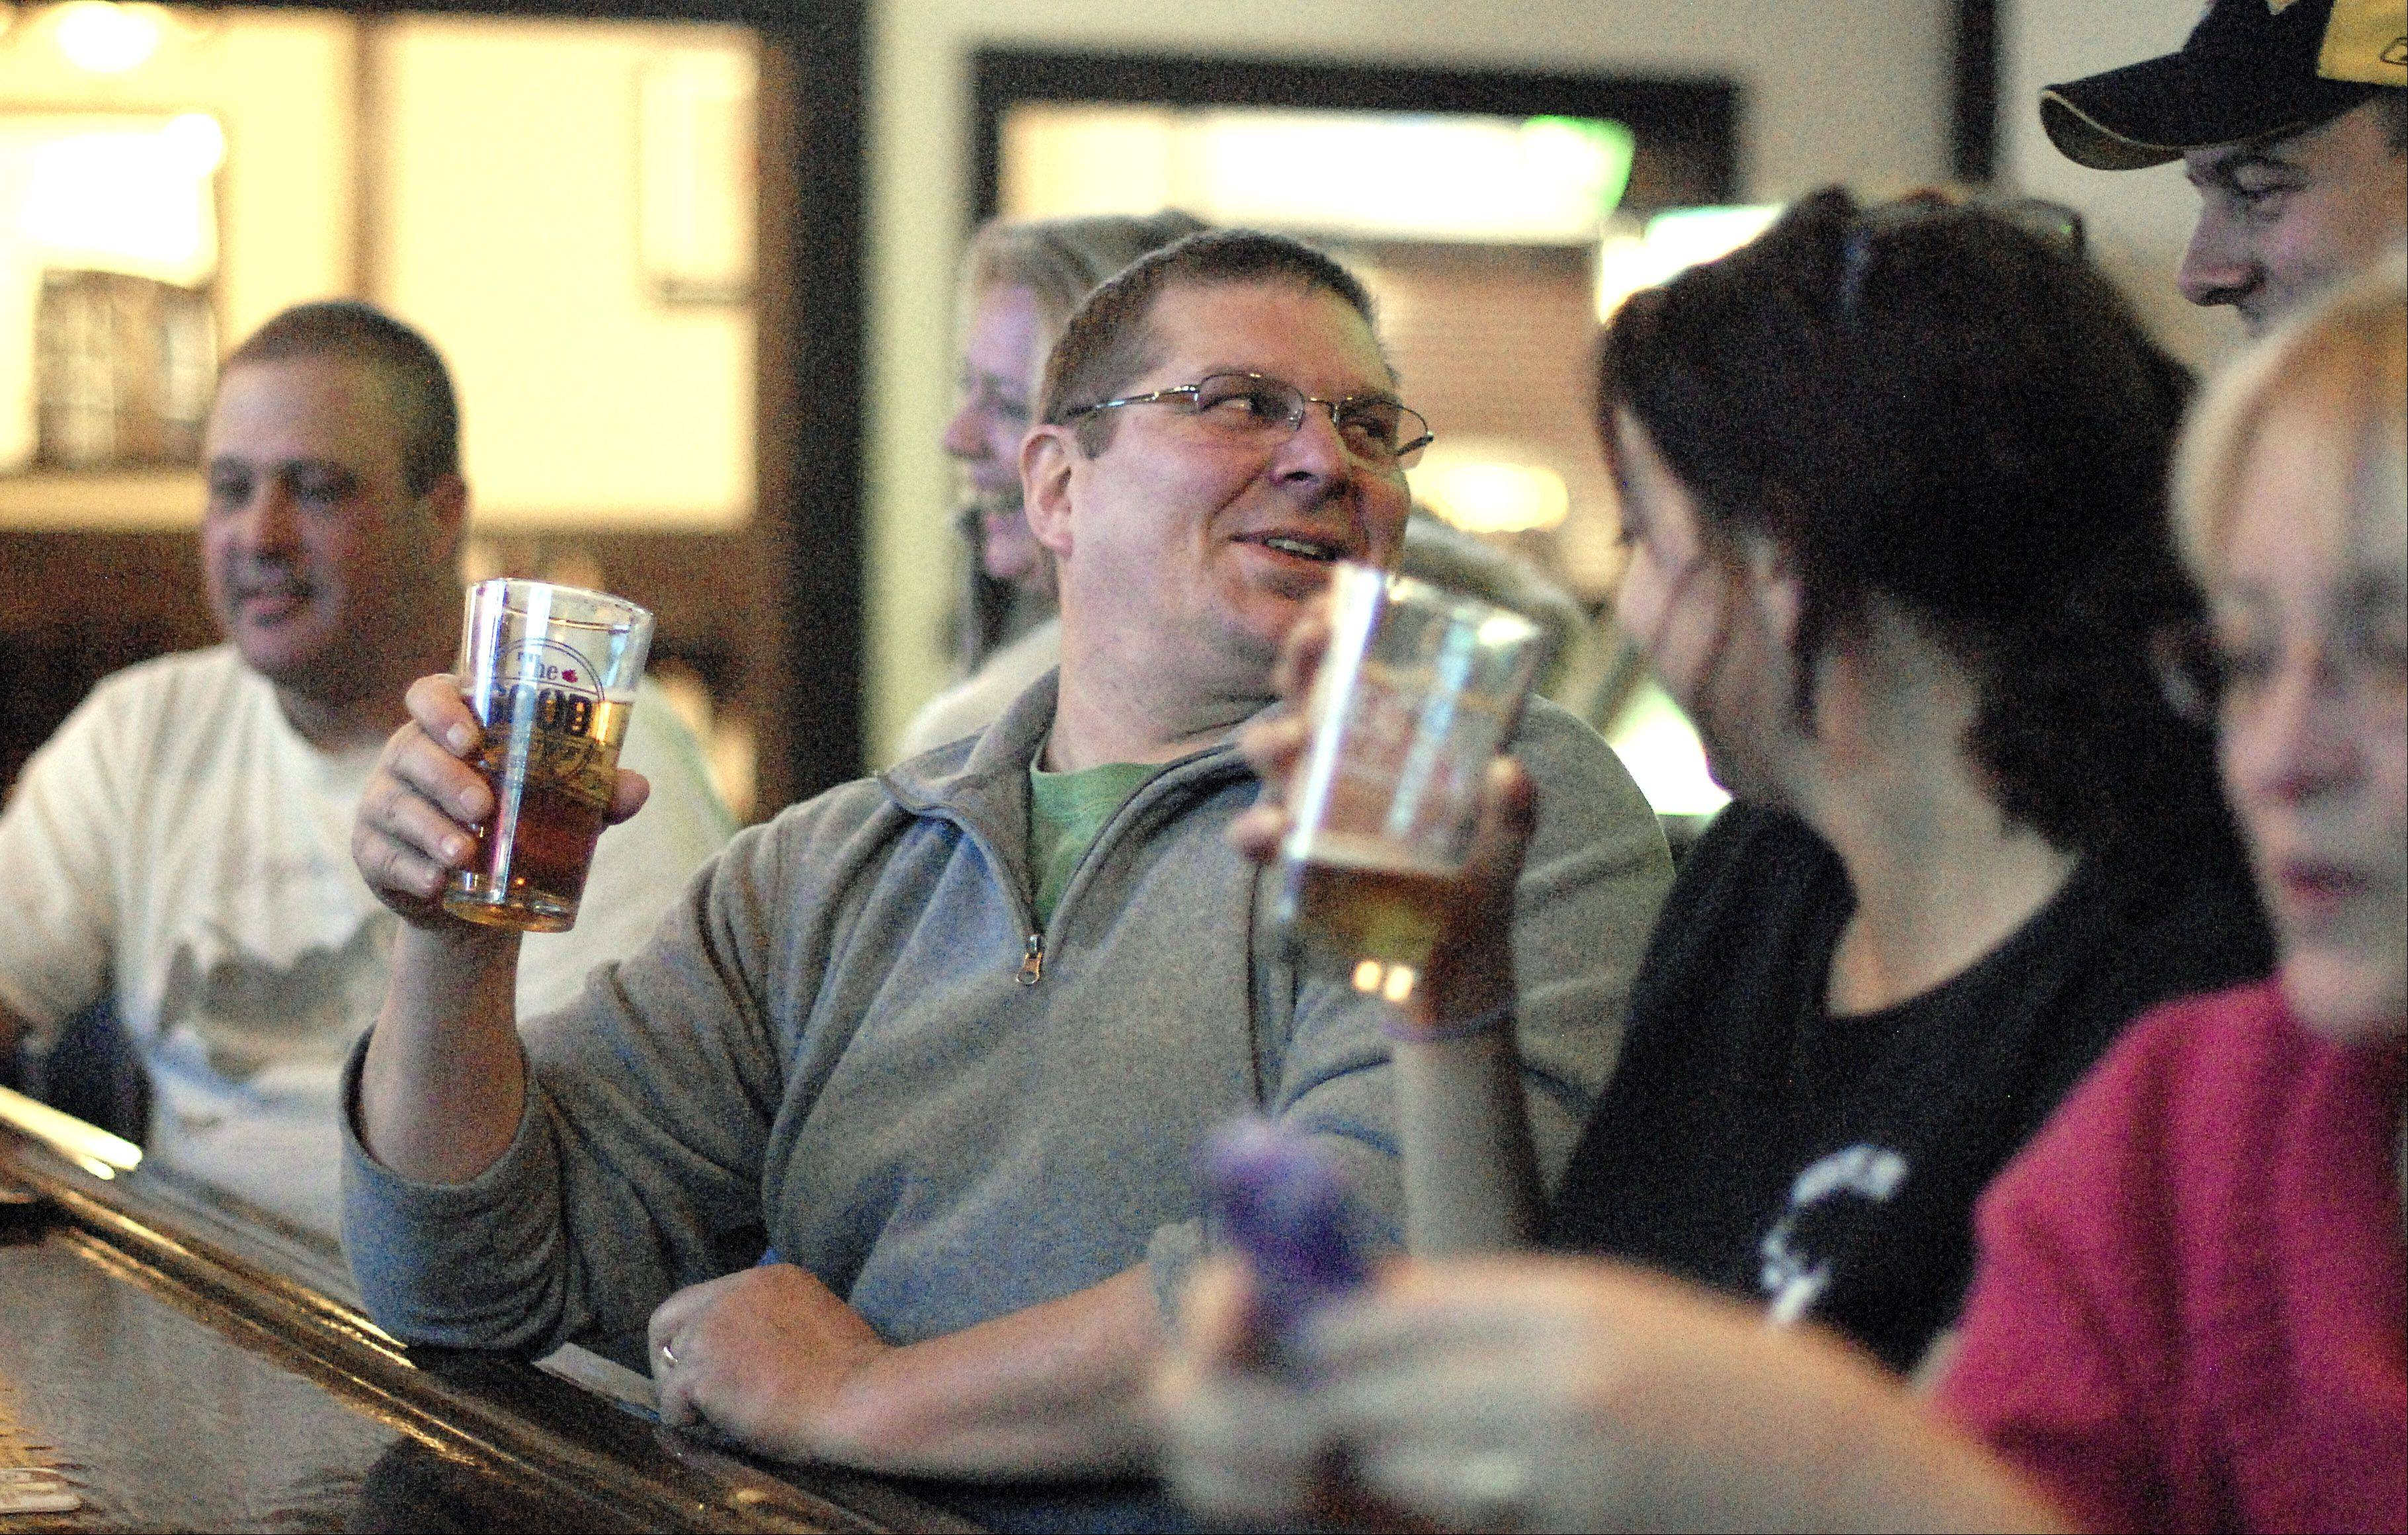 Curtis Alf of St. Charles sits at the bar at White Stag Tavern, which draws a laid-back crowd.